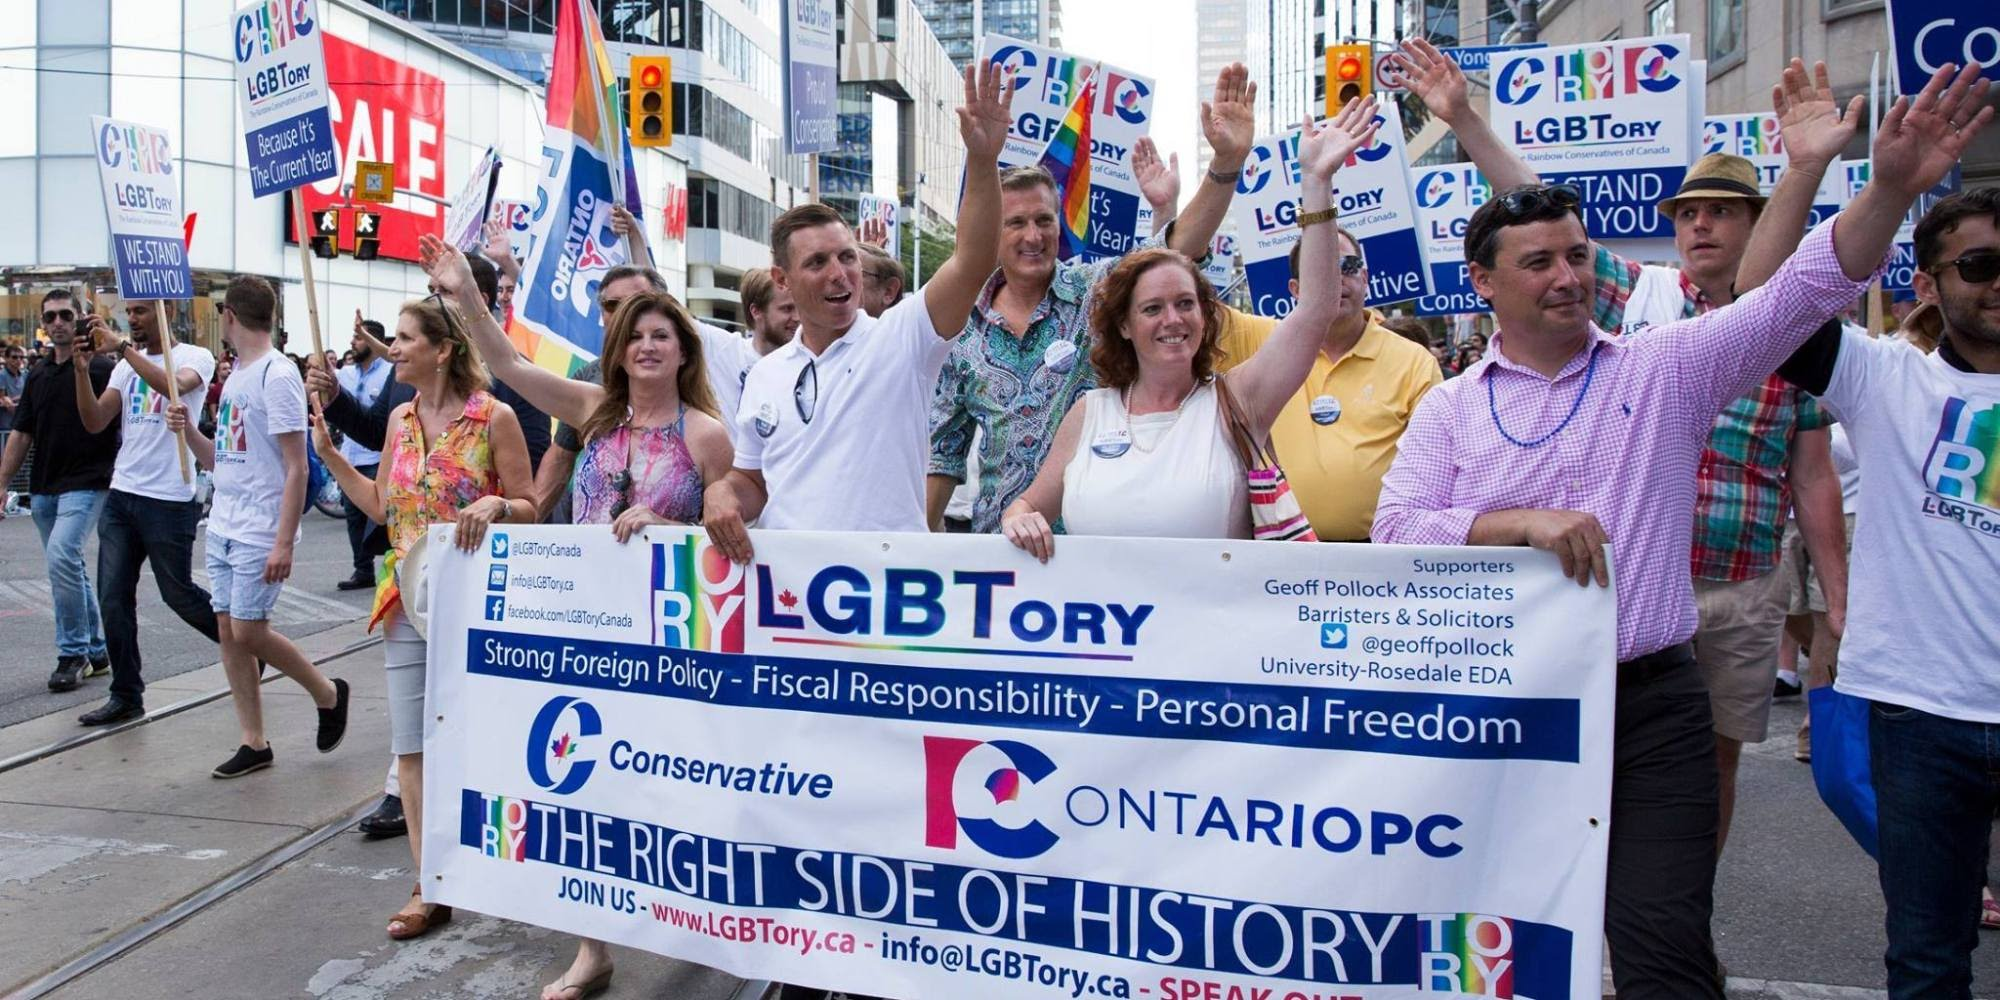 Conservatives have come far on same-sex marriage - but far enough?